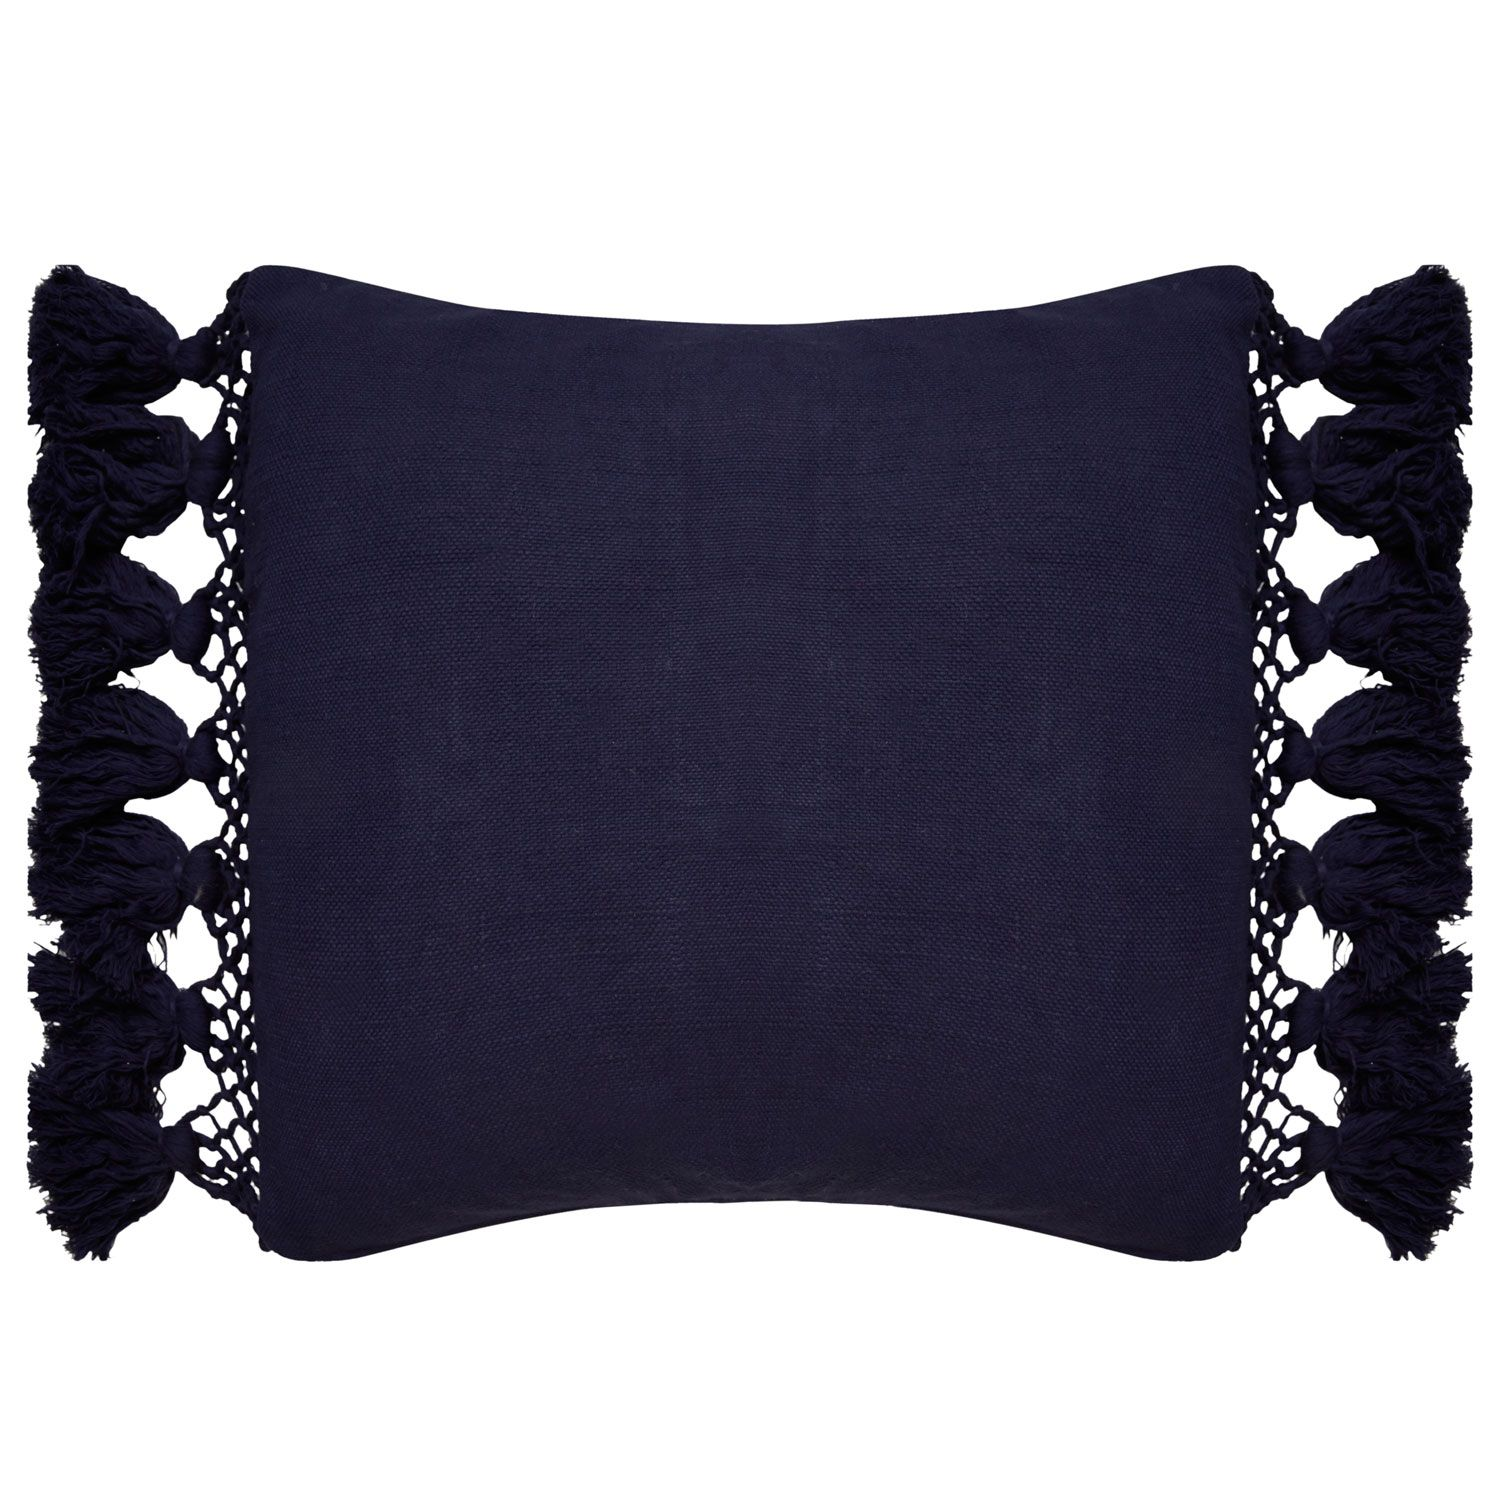 This Pillow Punches Up The Color And Comfort Quotient Of Your Home With Panache 20in W X 20in H Availa Tassel Pillow Elegant Throw Pillows Kate Spade Pillows